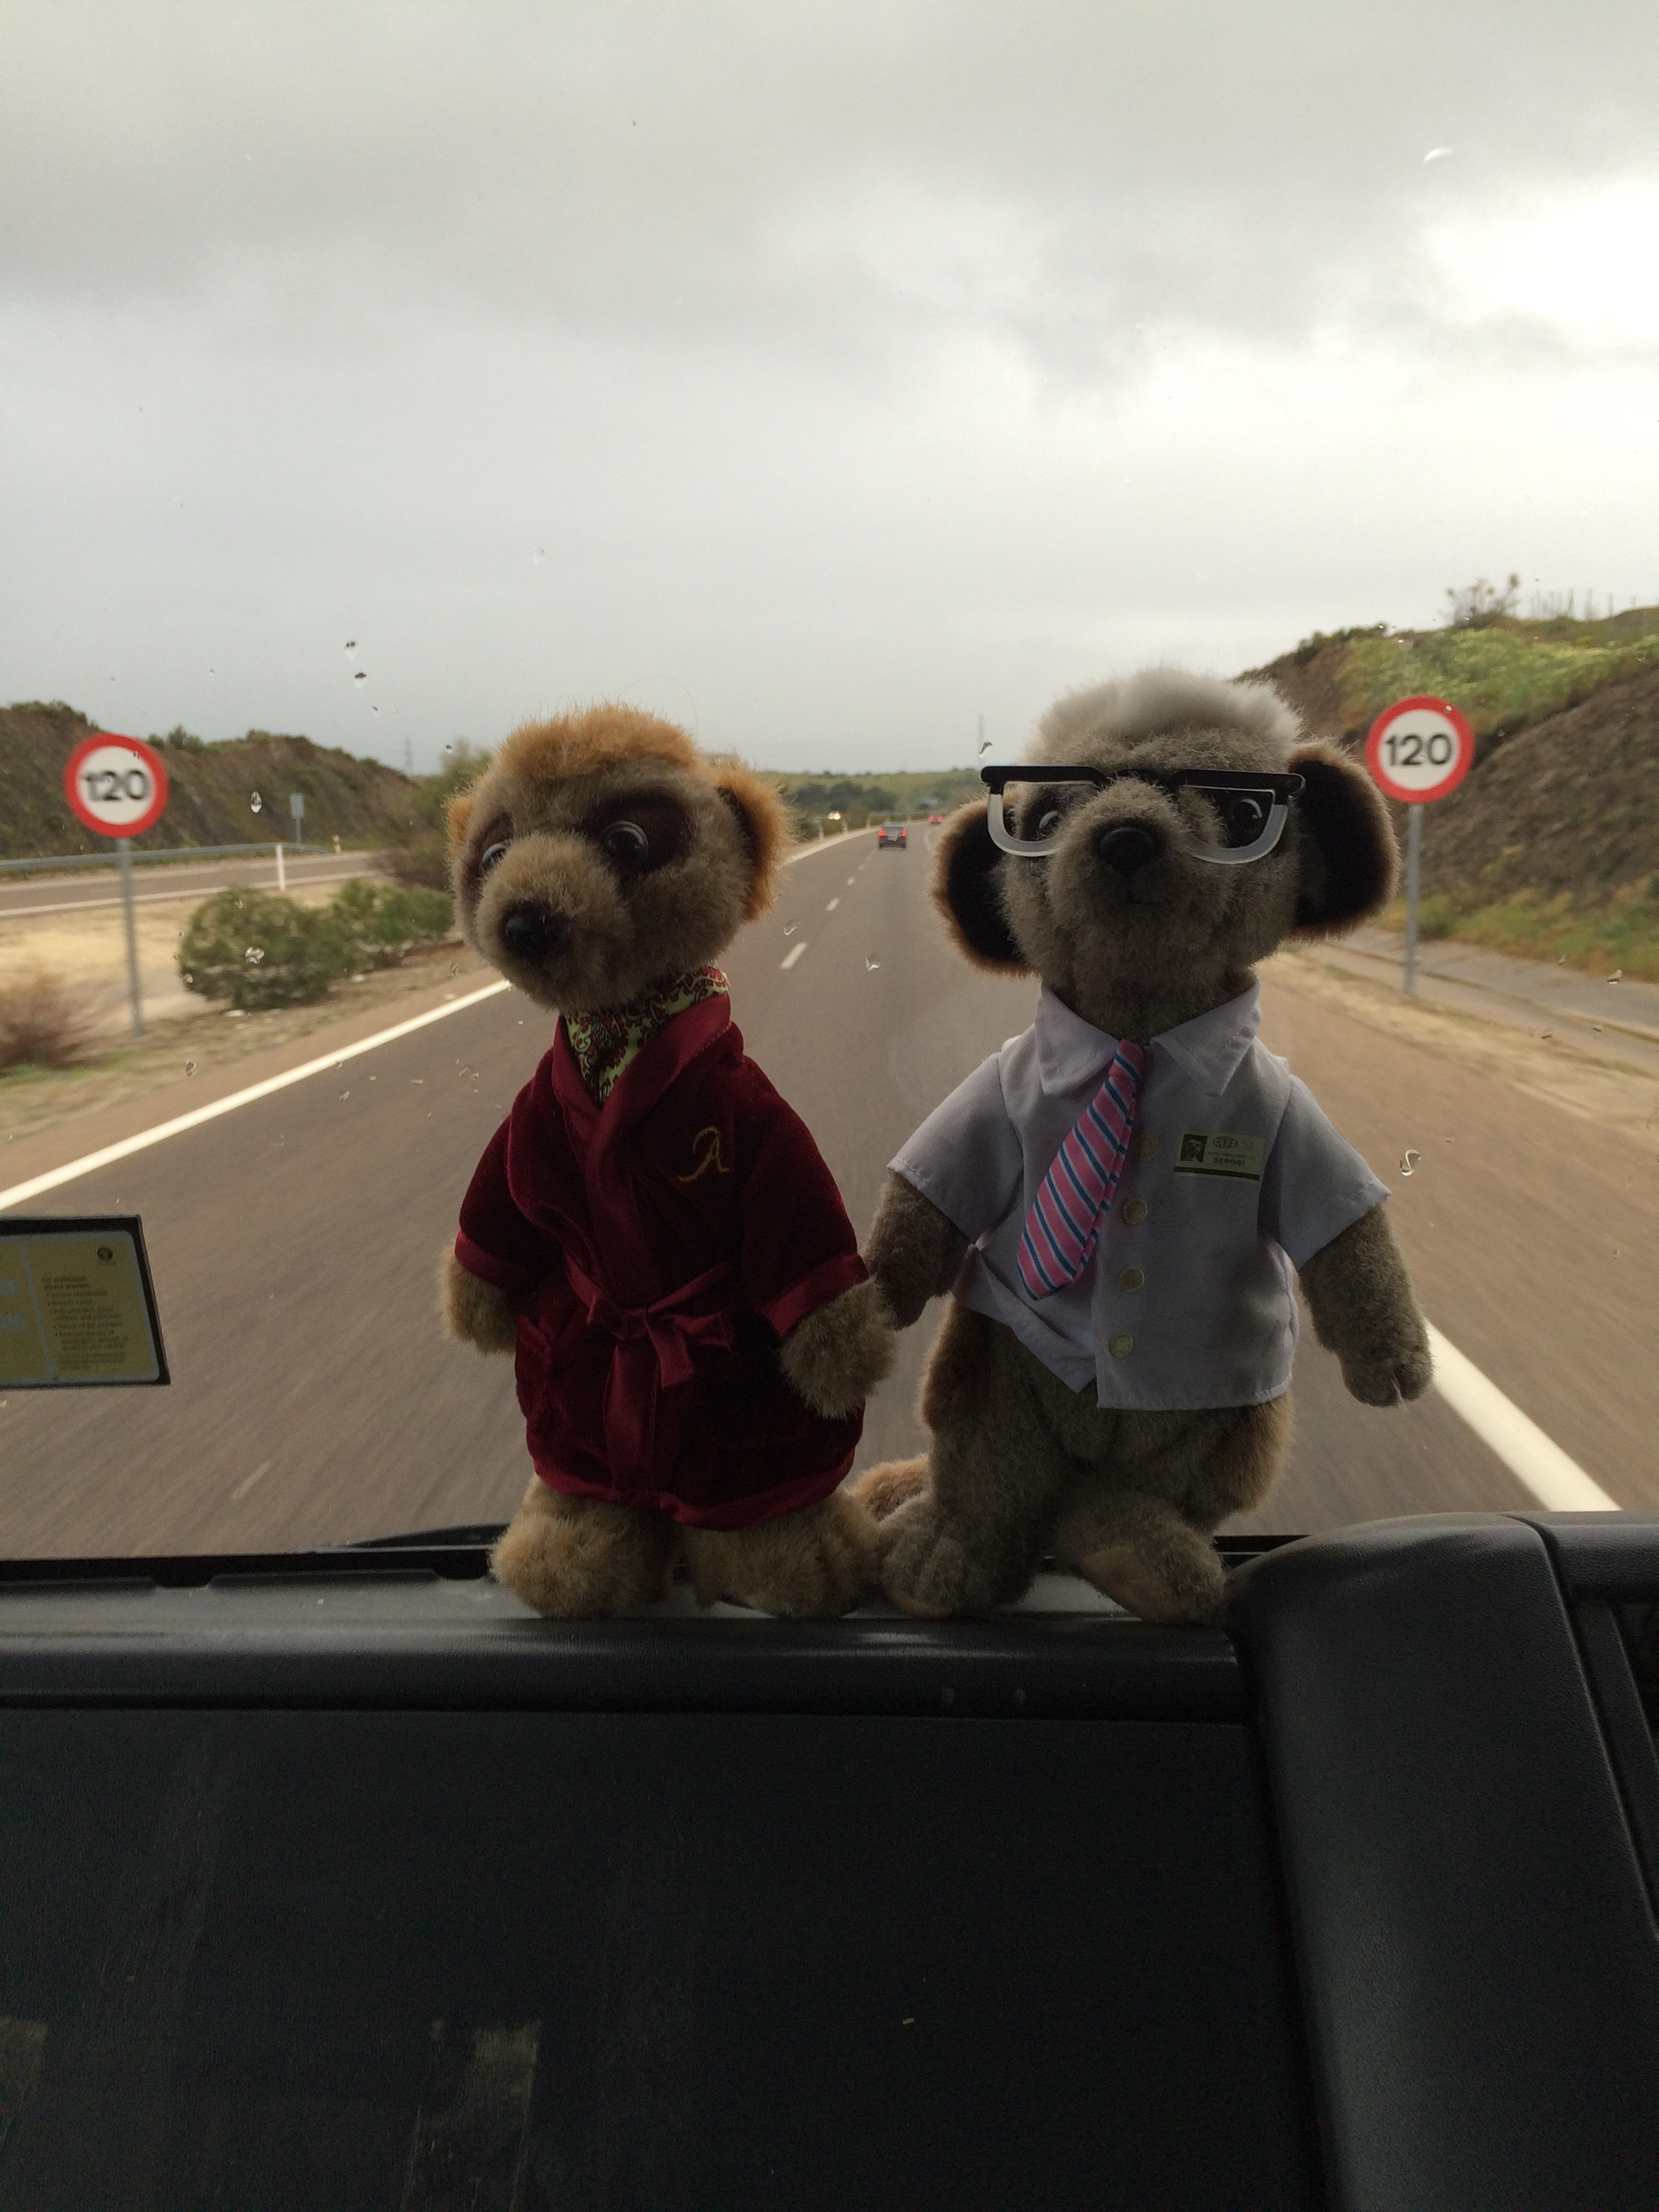 Aleksander and Sergei heading home